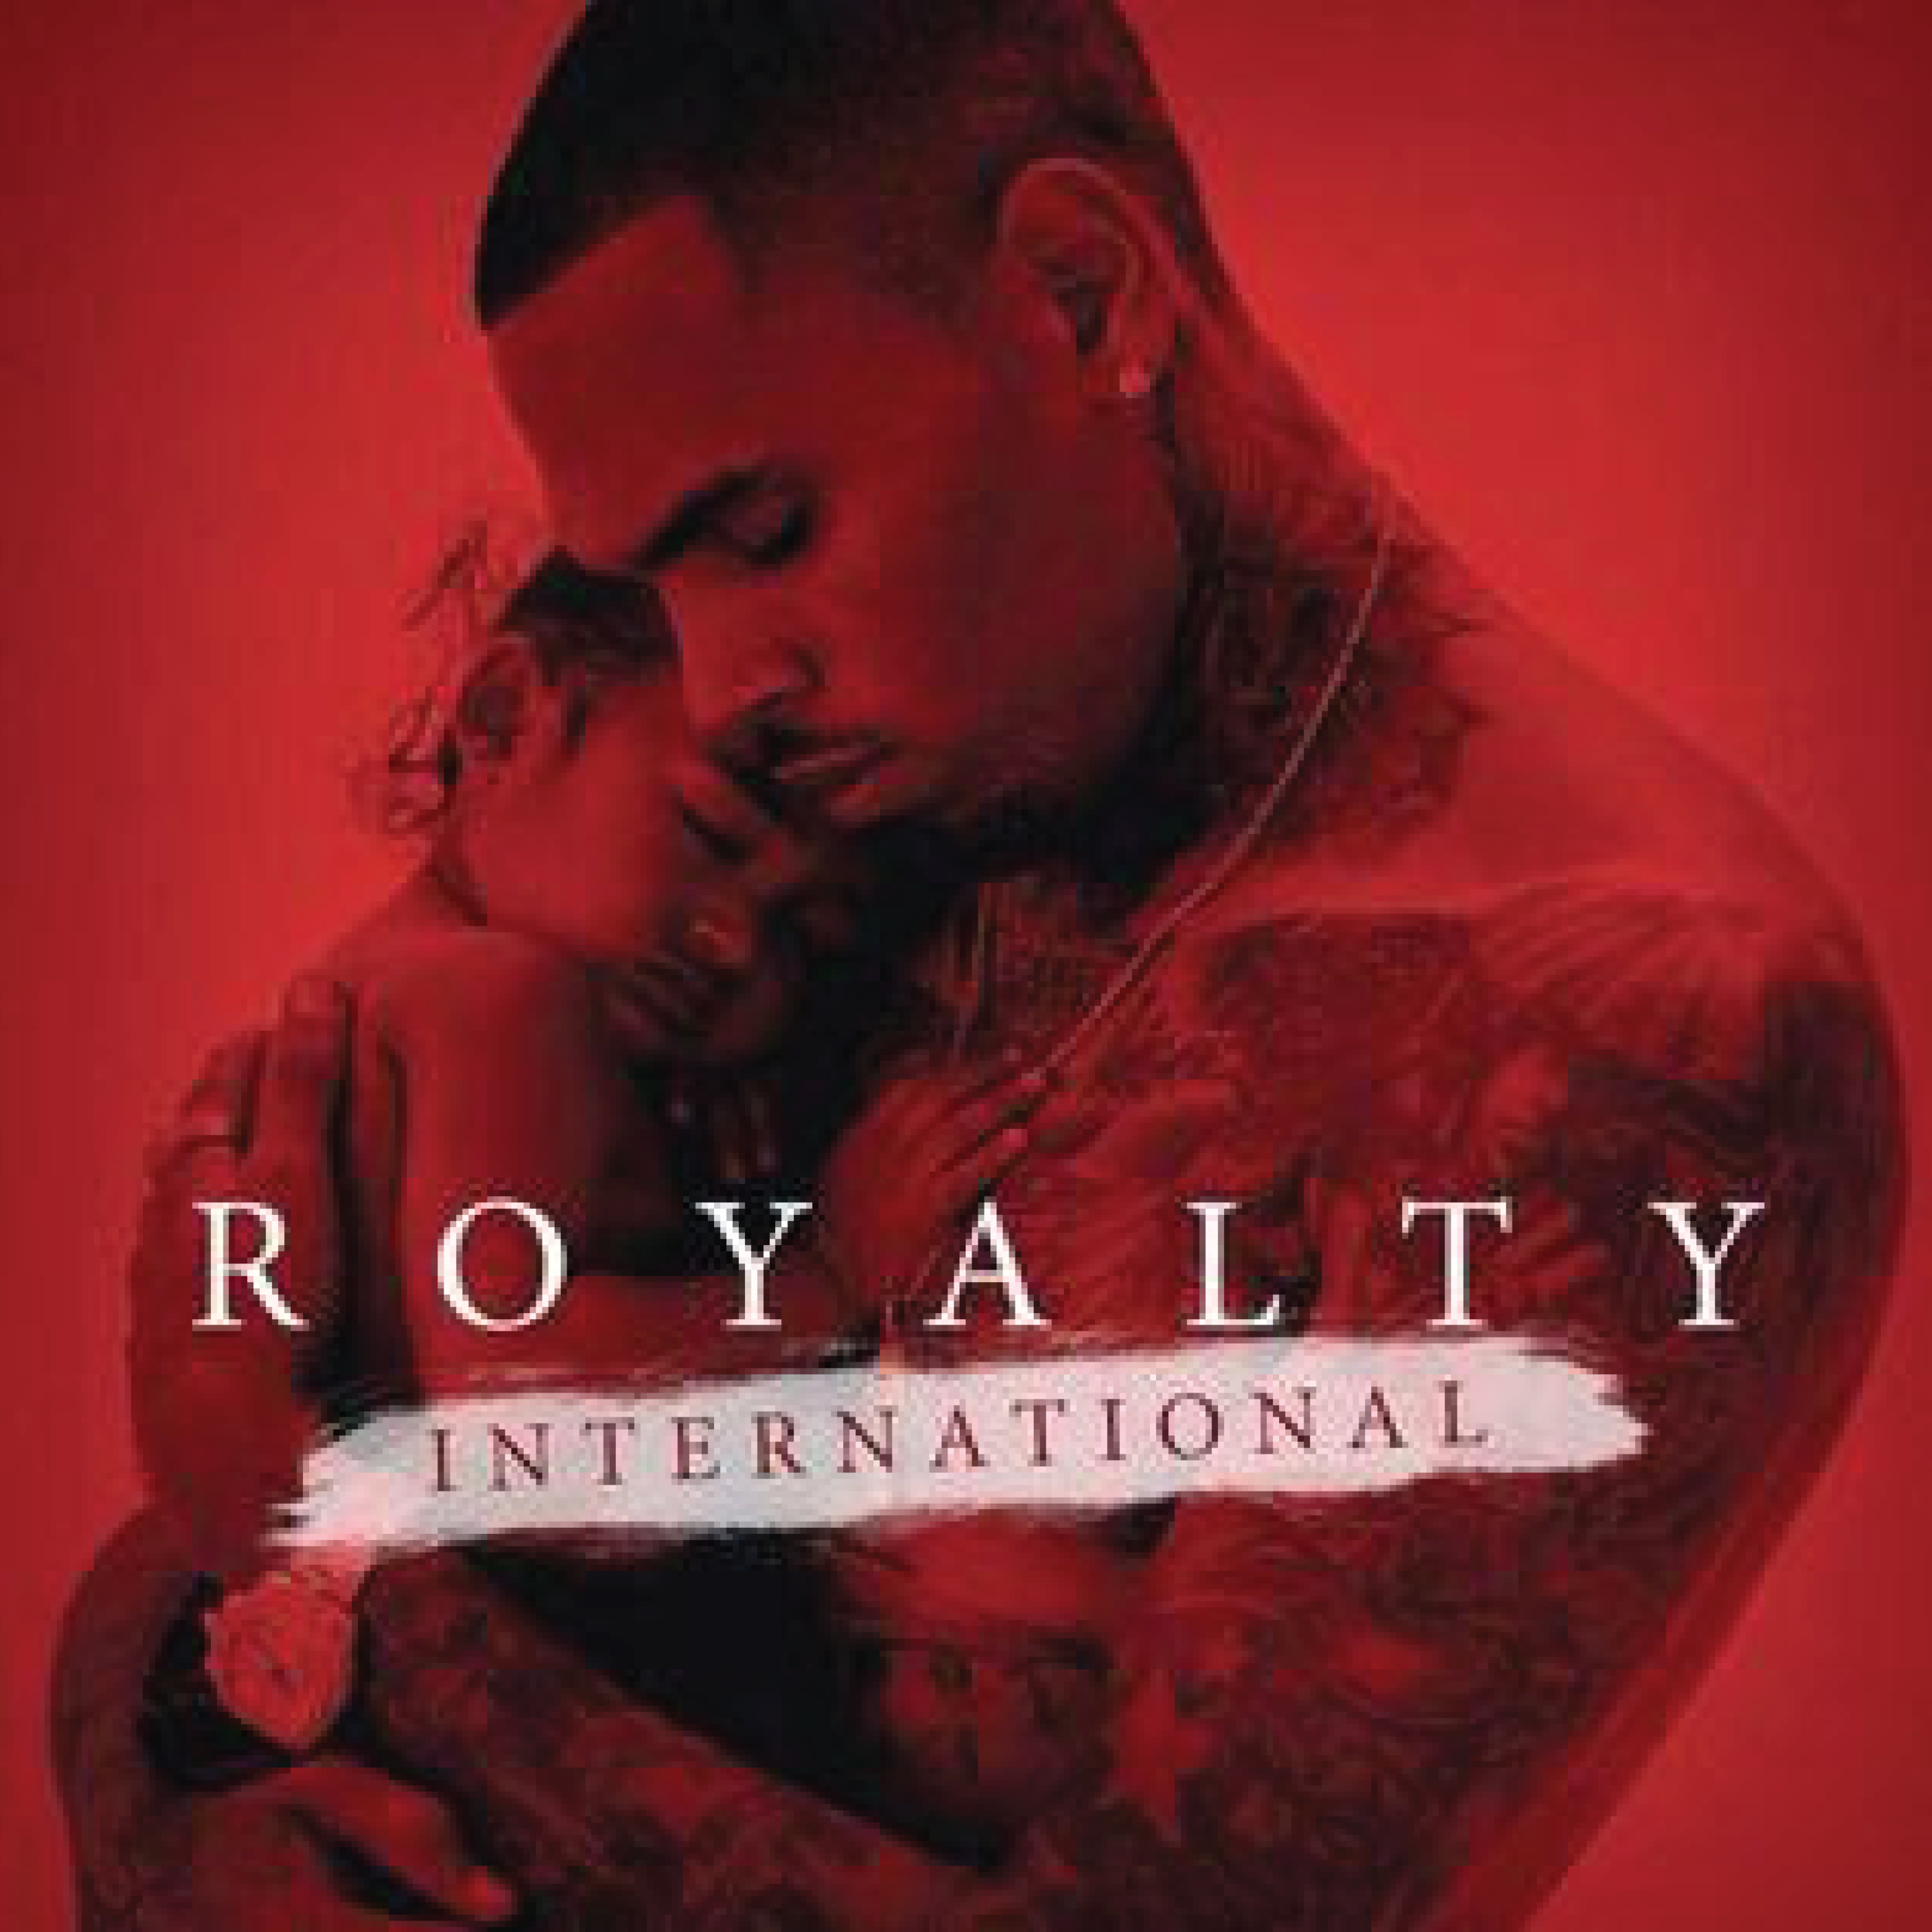 ROYALTY INTERNATIONAL - EP